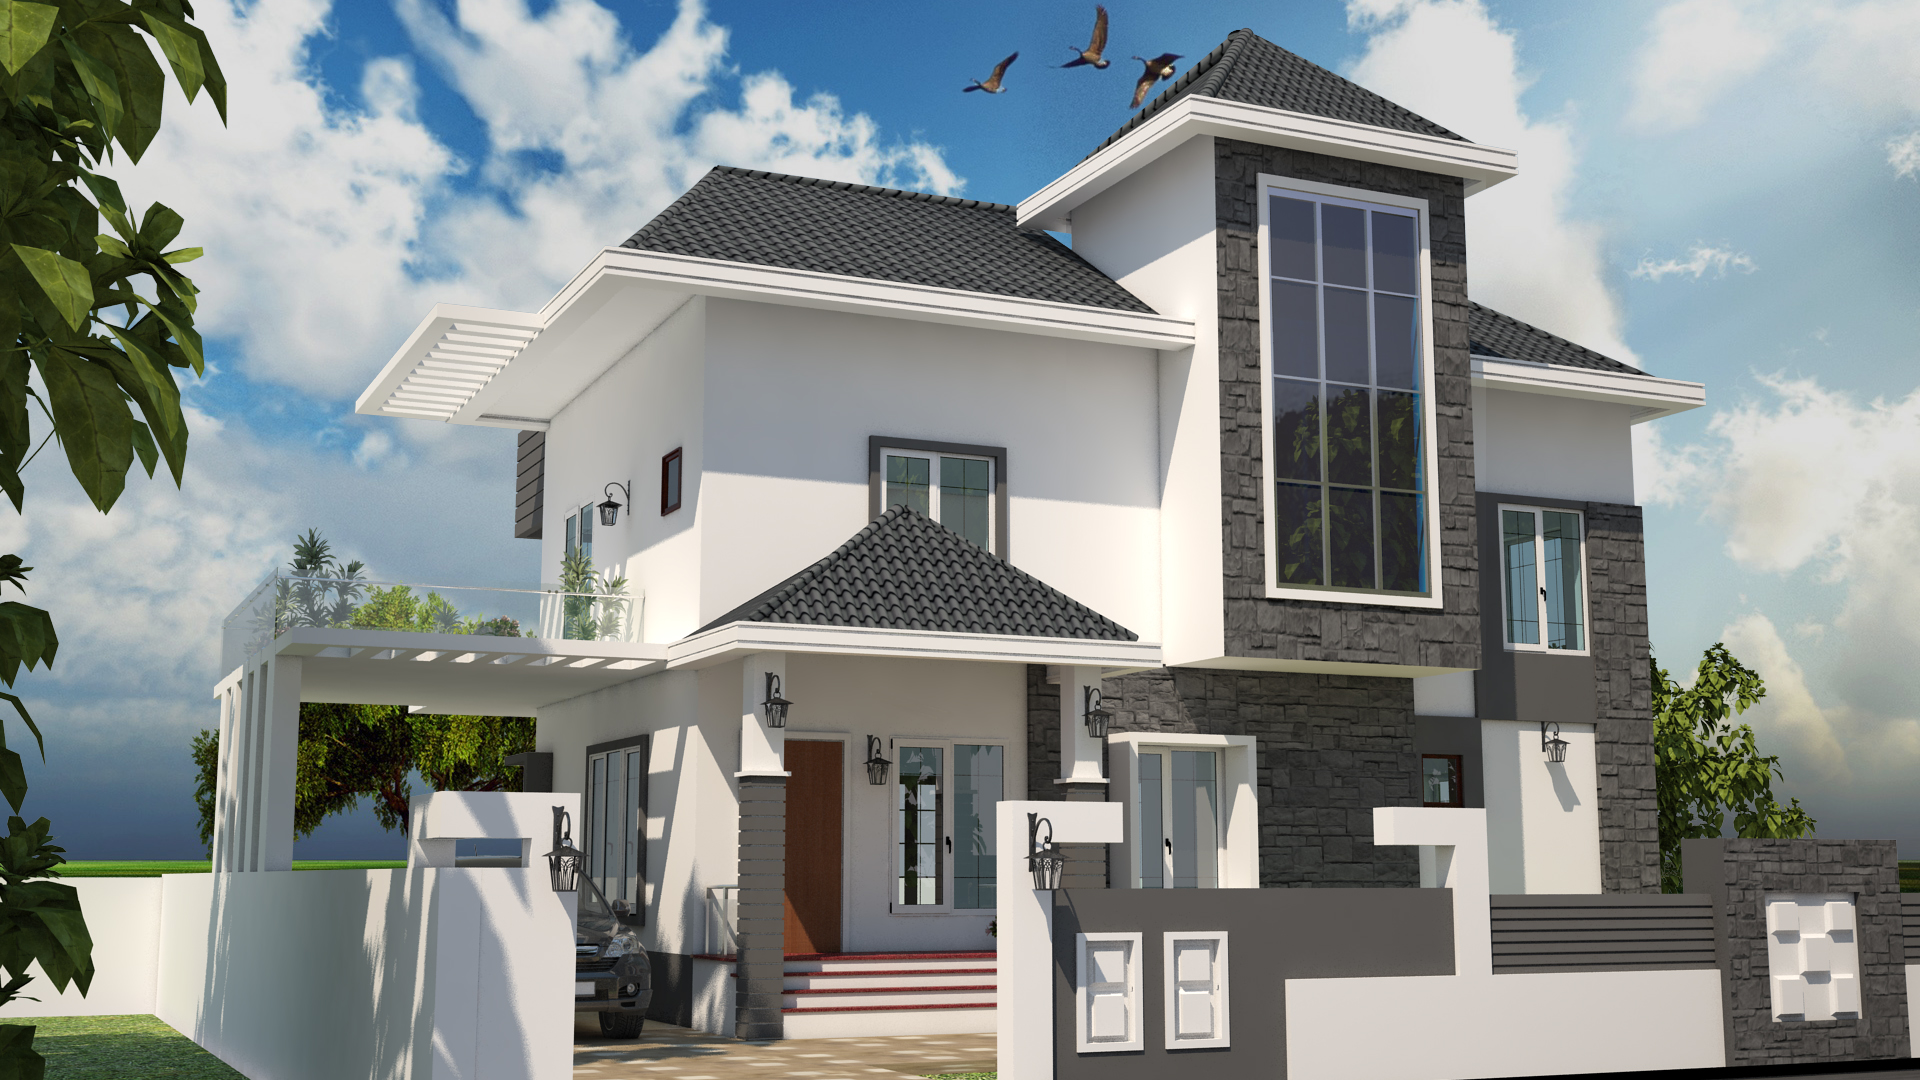 WE DESIGN YOUR EXTERIOR AS WELL